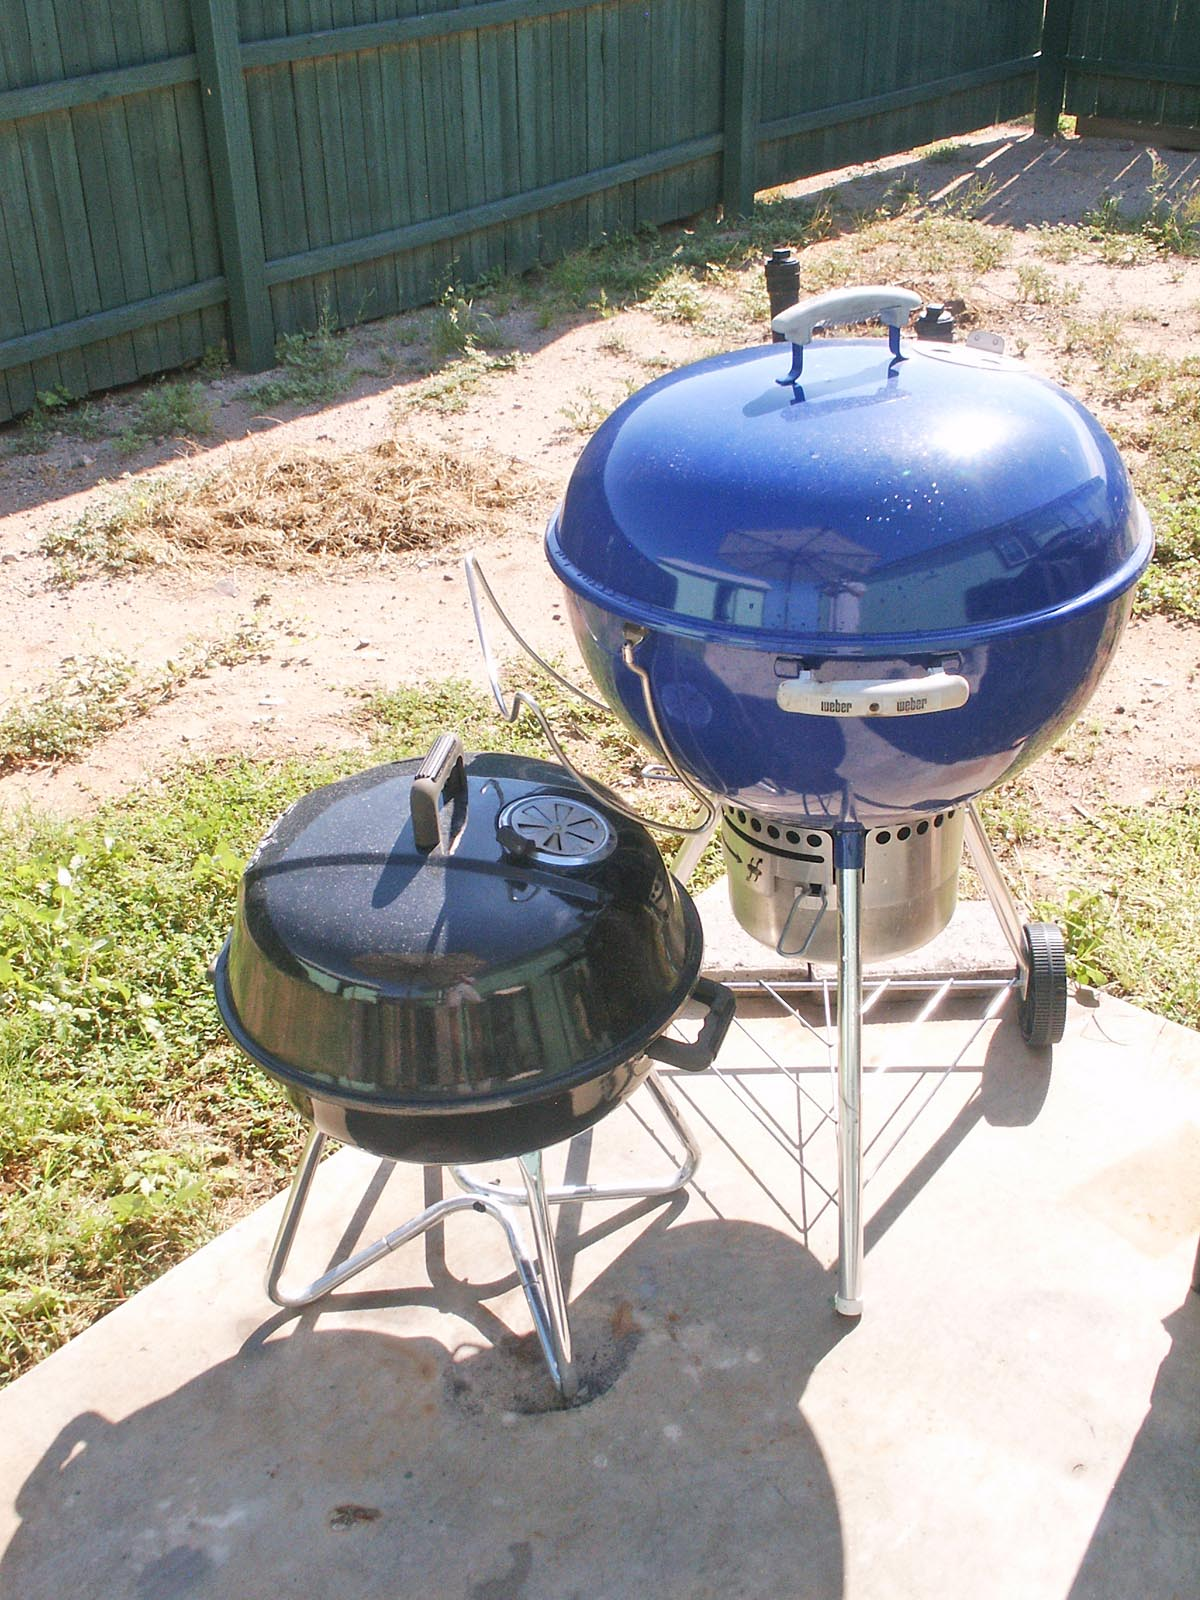 Nowy grill Broil King